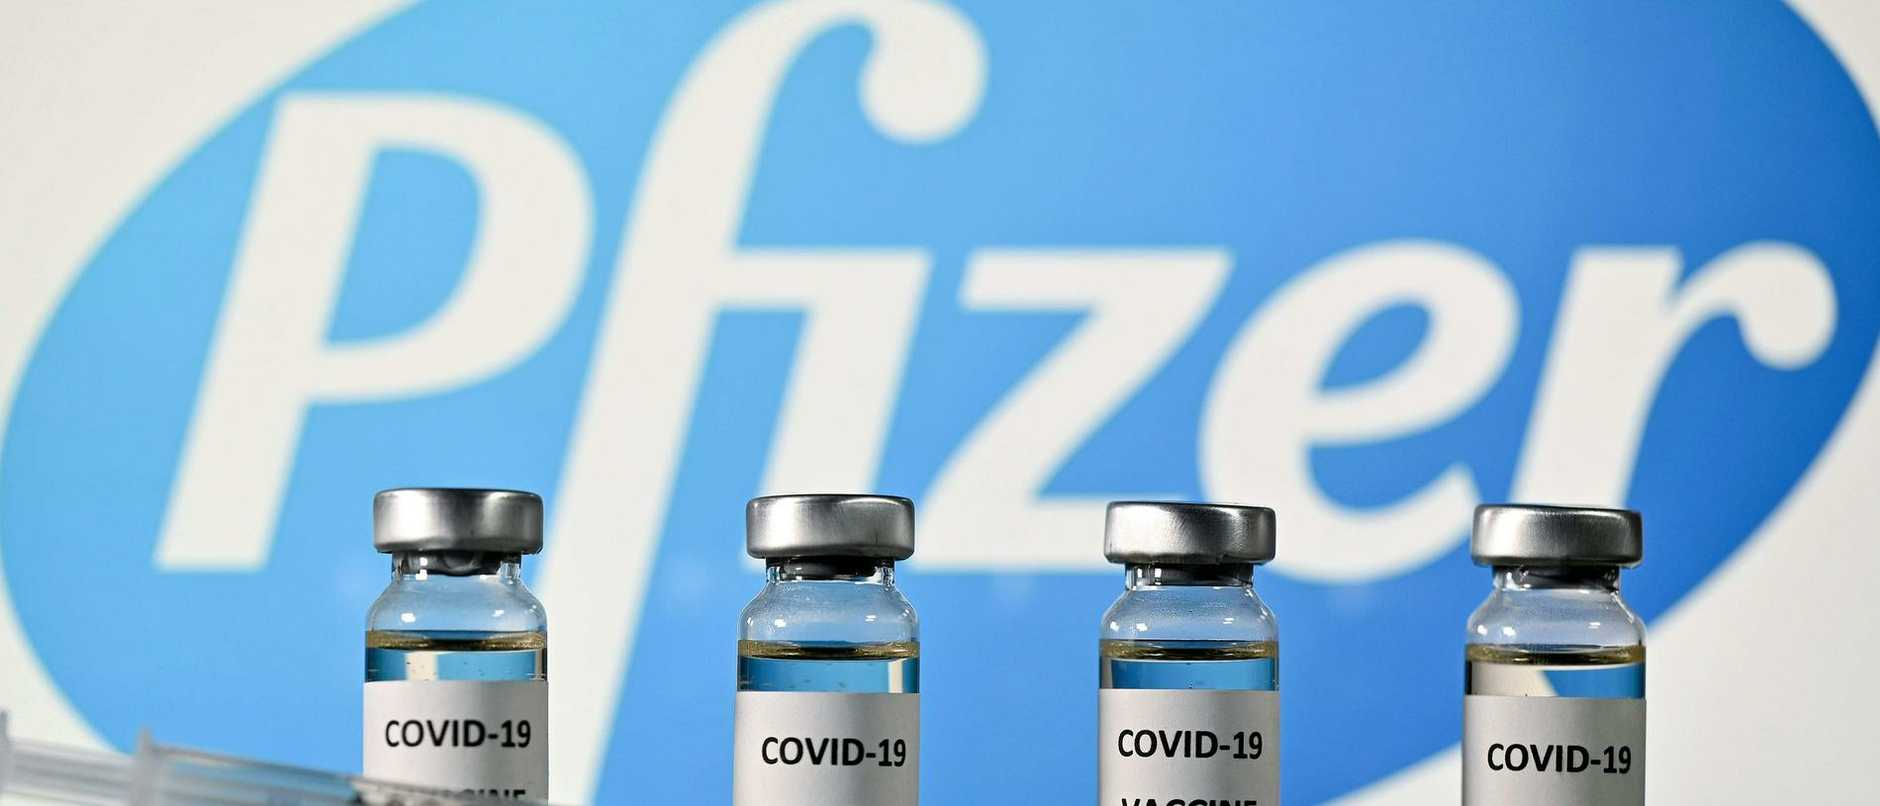 Australians could receive more doses of the highly effective Pfizer vaccine, but a supply chain issue has thrown Australia's rollout plan into doubt.